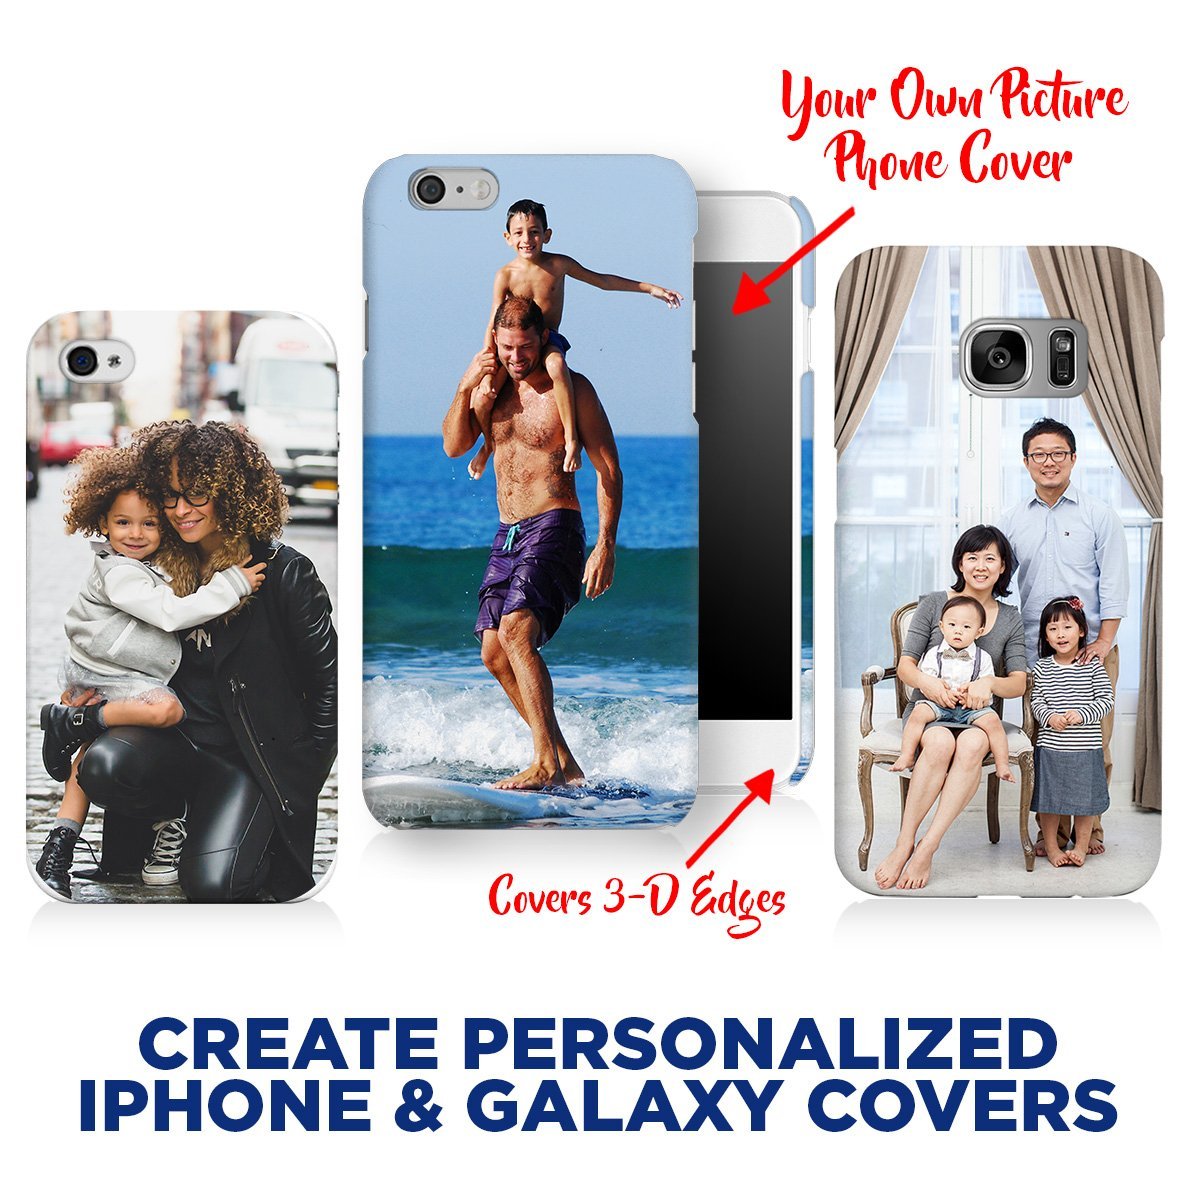 reputable site 285bd 7727d Amazon.com: Apple iPhone Xs/X Case, Your Own Custom iPhone & Galaxy ...